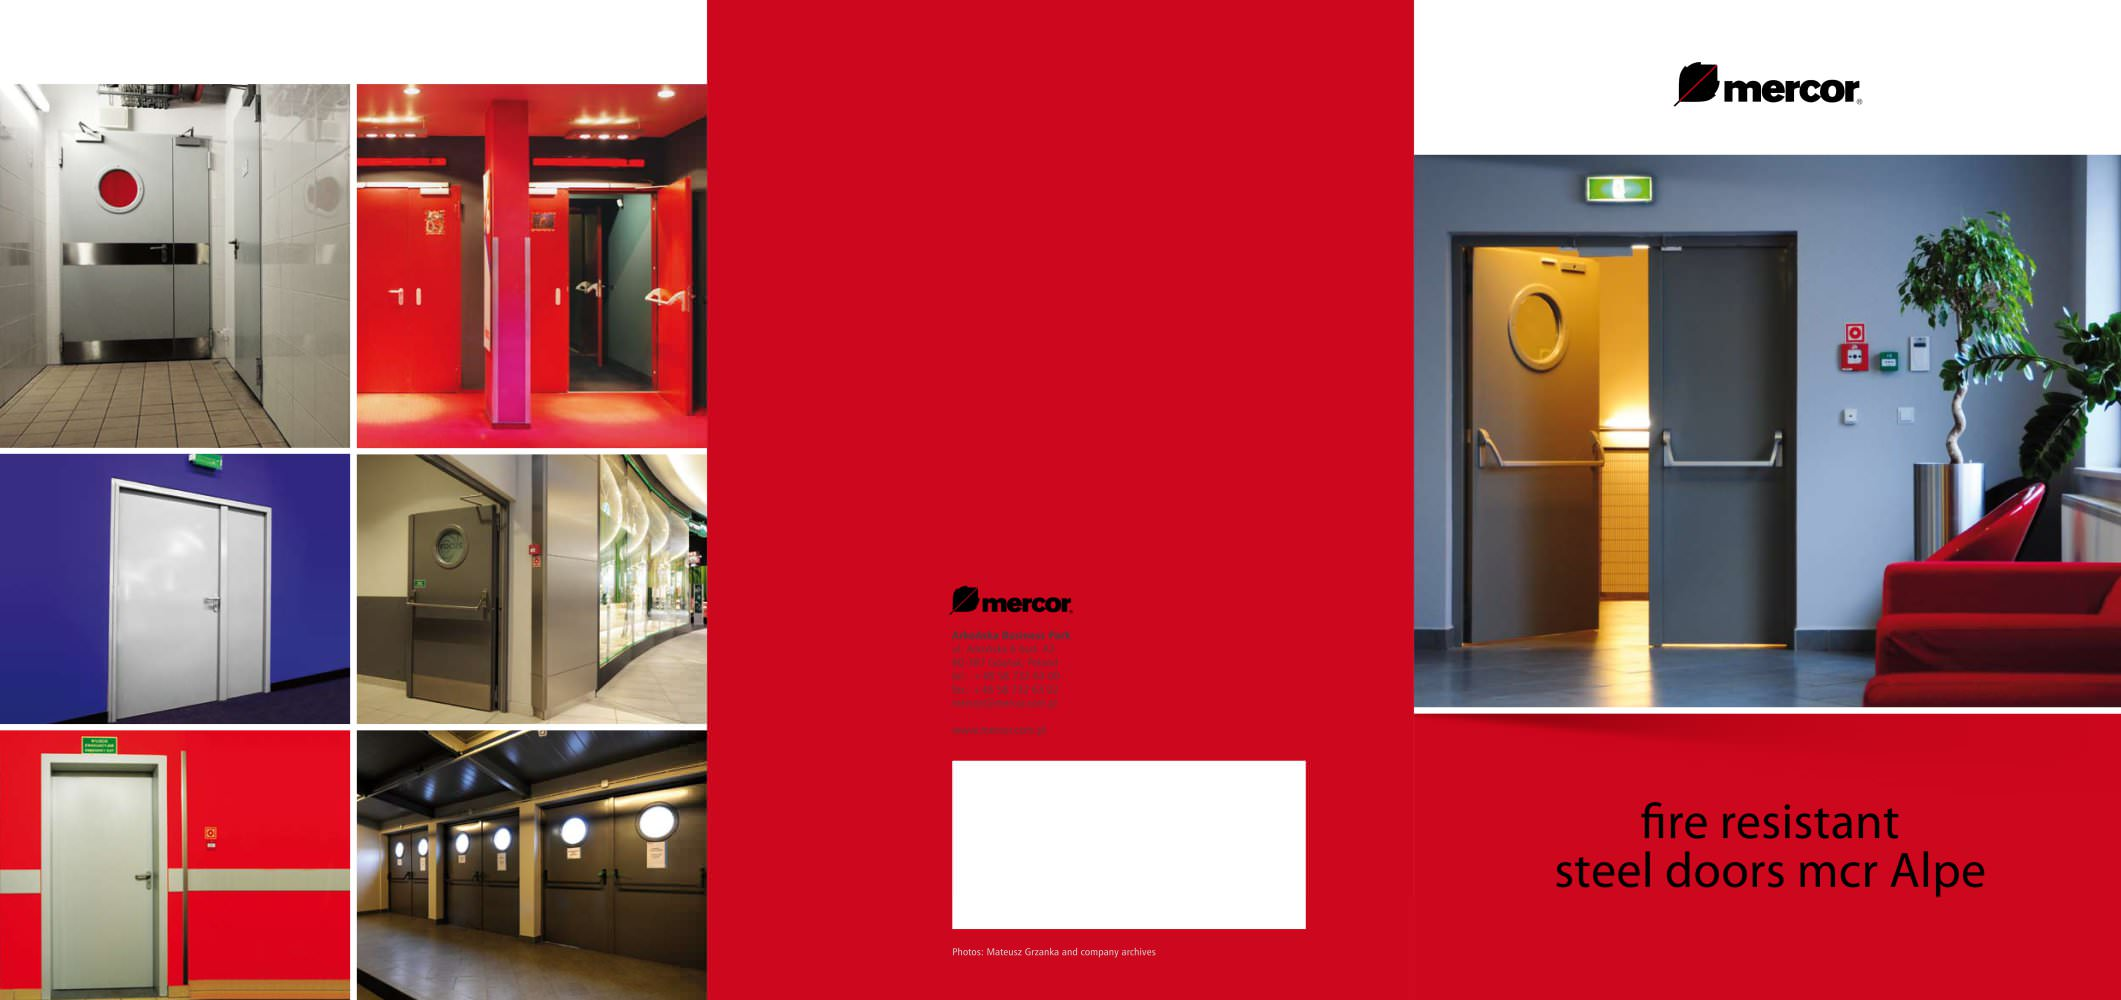 Awesome Steel Doors Mcr Alpe Brochure Mercor Pdf Catalogues Largest Home Design Picture Inspirations Pitcheantrous